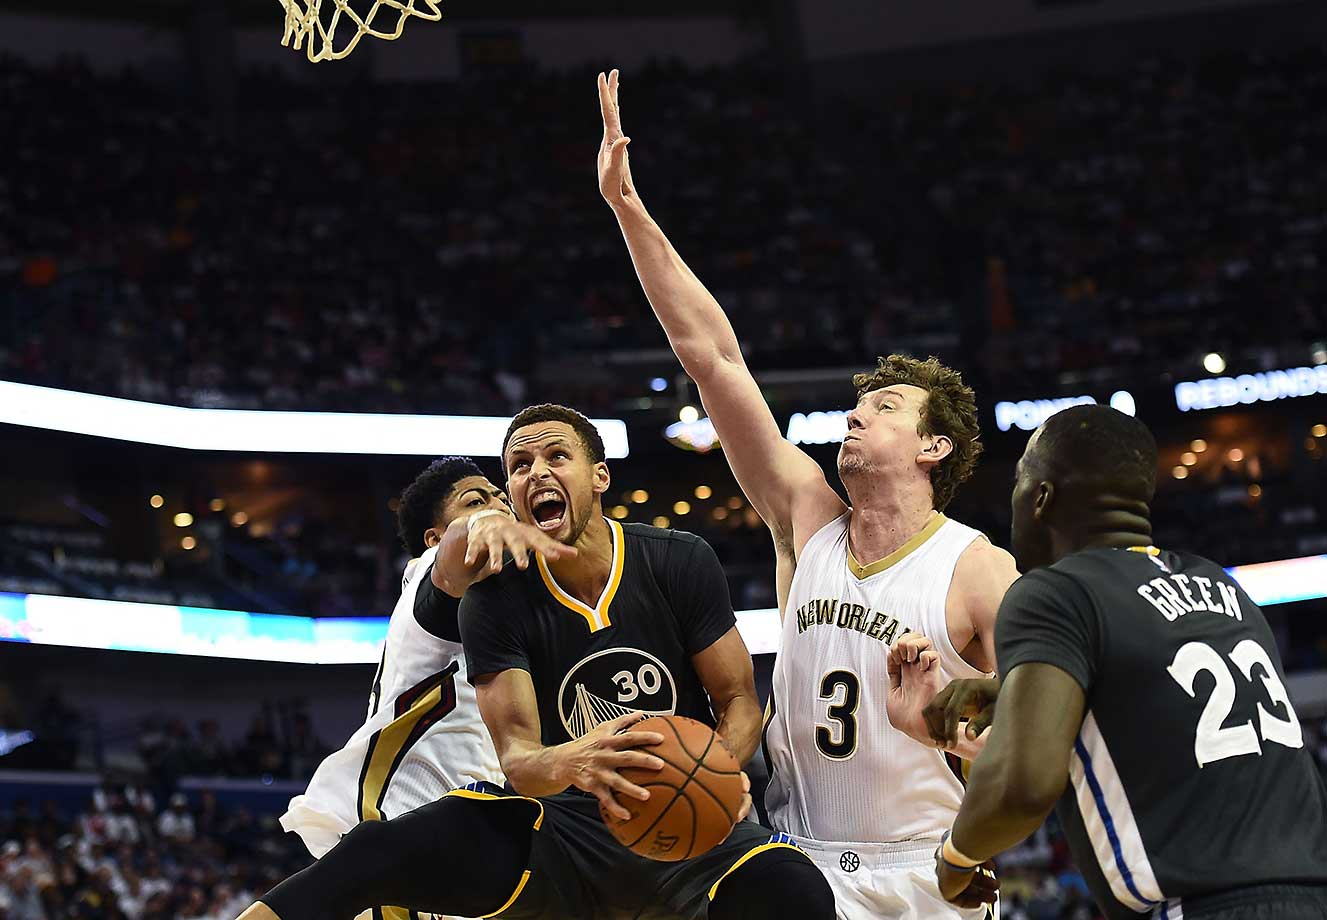 Steph Curry drives to the basket between Anthony Davis (23) and Omer Asik (3) of the New Orleans Pelicans.